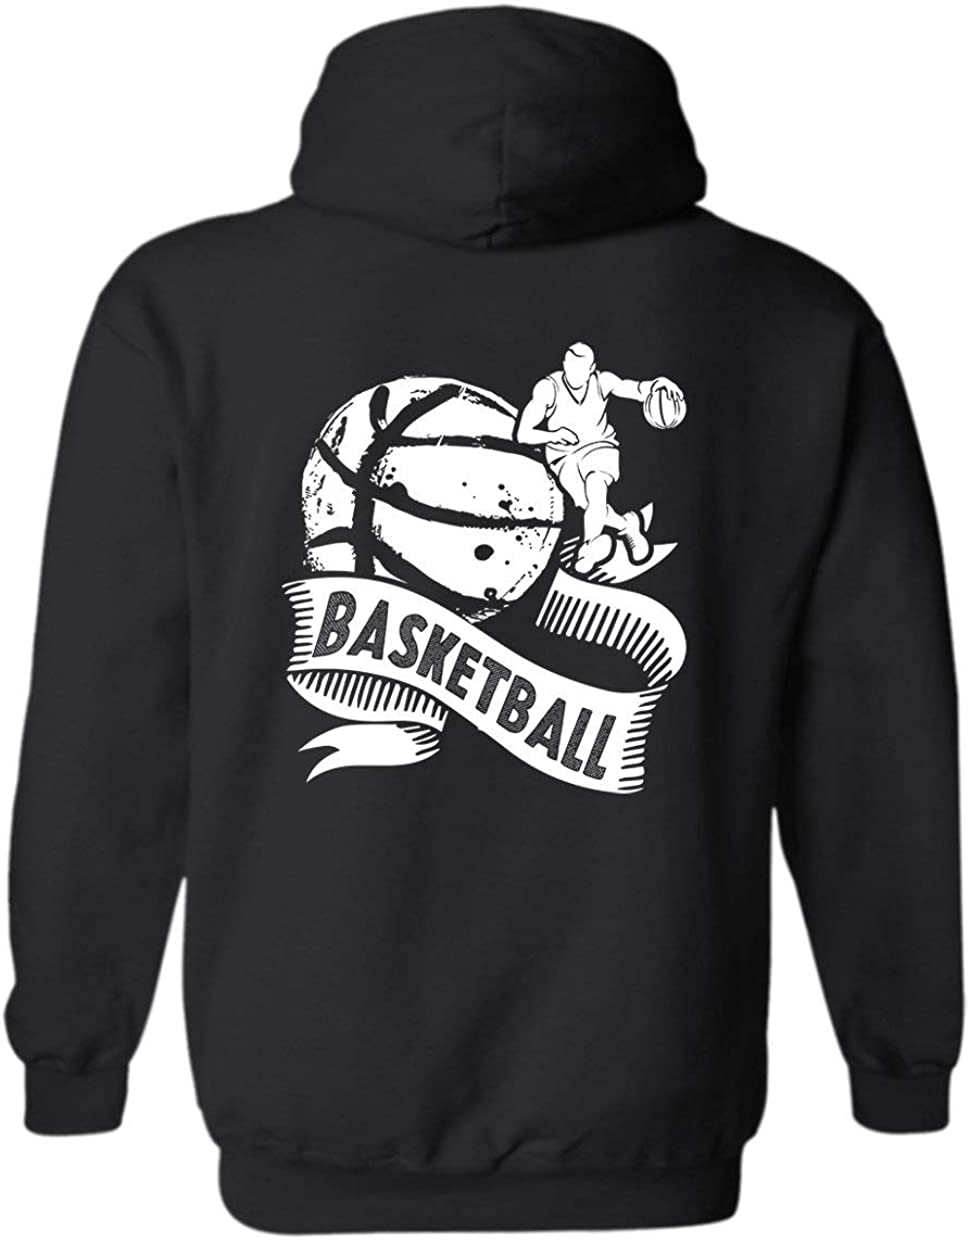 Brown Bee Basketball Hoodies Hooded unisex Challenge the lowest price Sweatshirts Clothes